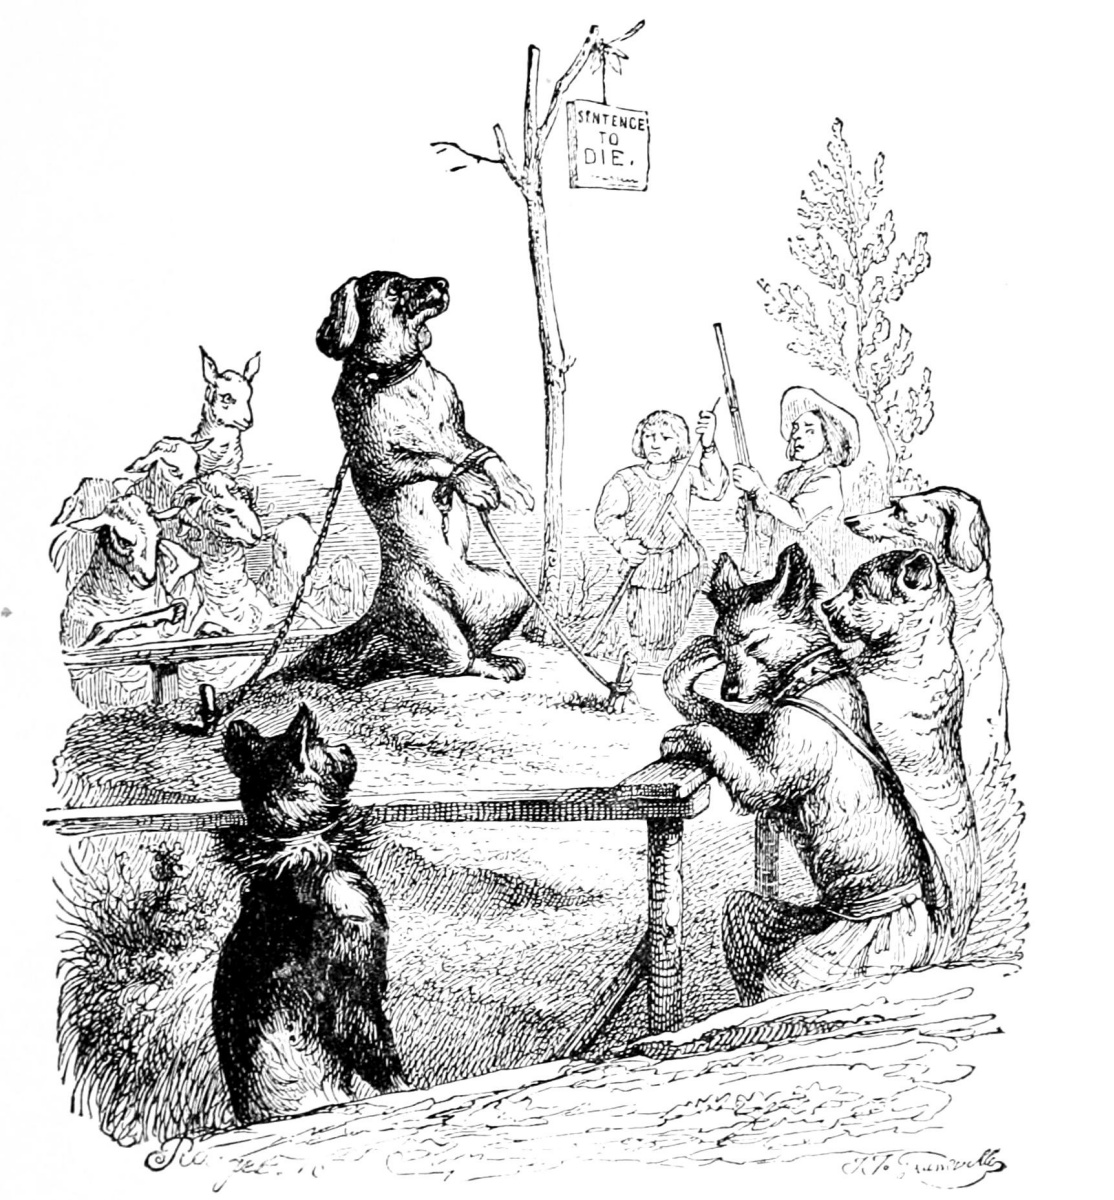 Jean Inias Isidore (Gerard) Granville. A dog's crime. Illustrations to the fables of Florian